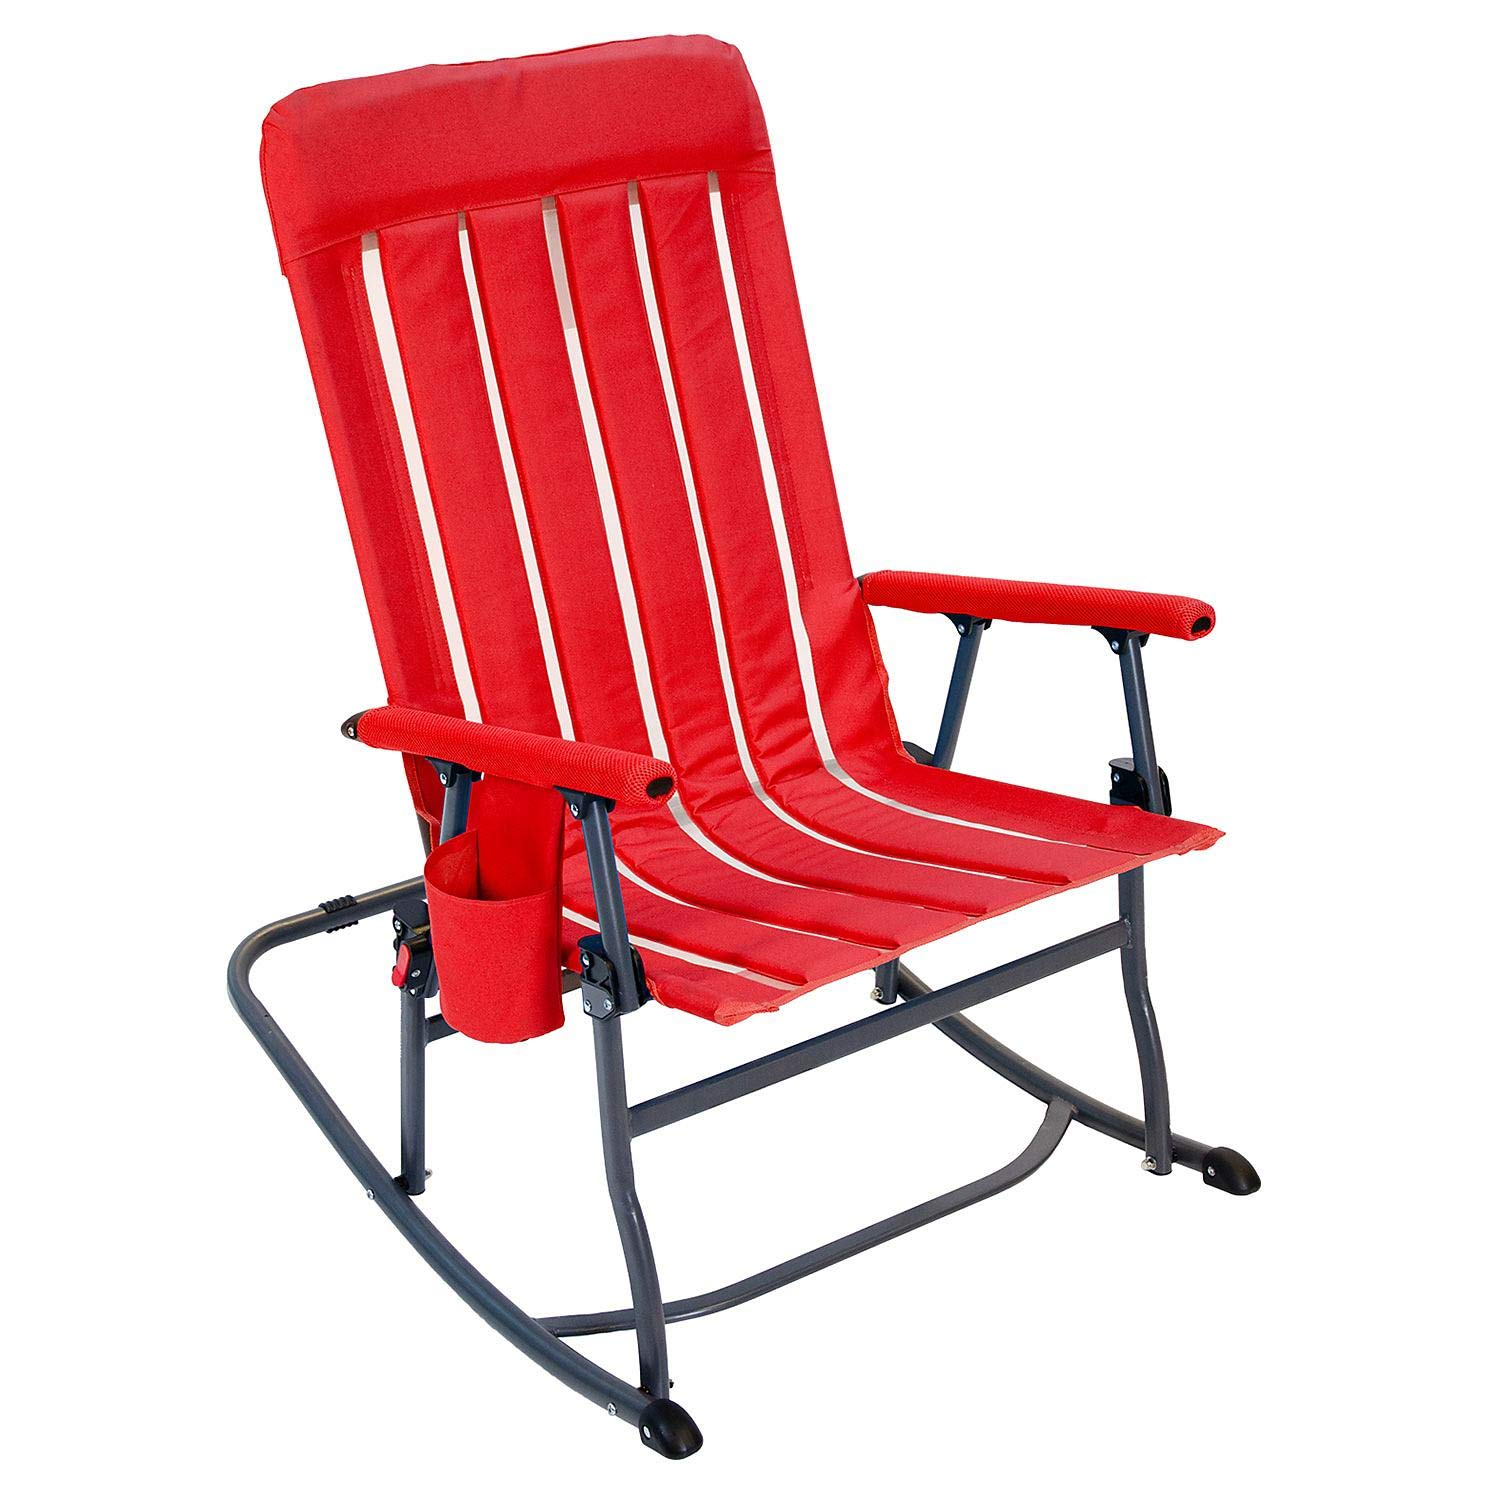 Swell Members Mark Portable Rocking Chair Red Ocoug Best Dining Table And Chair Ideas Images Ocougorg